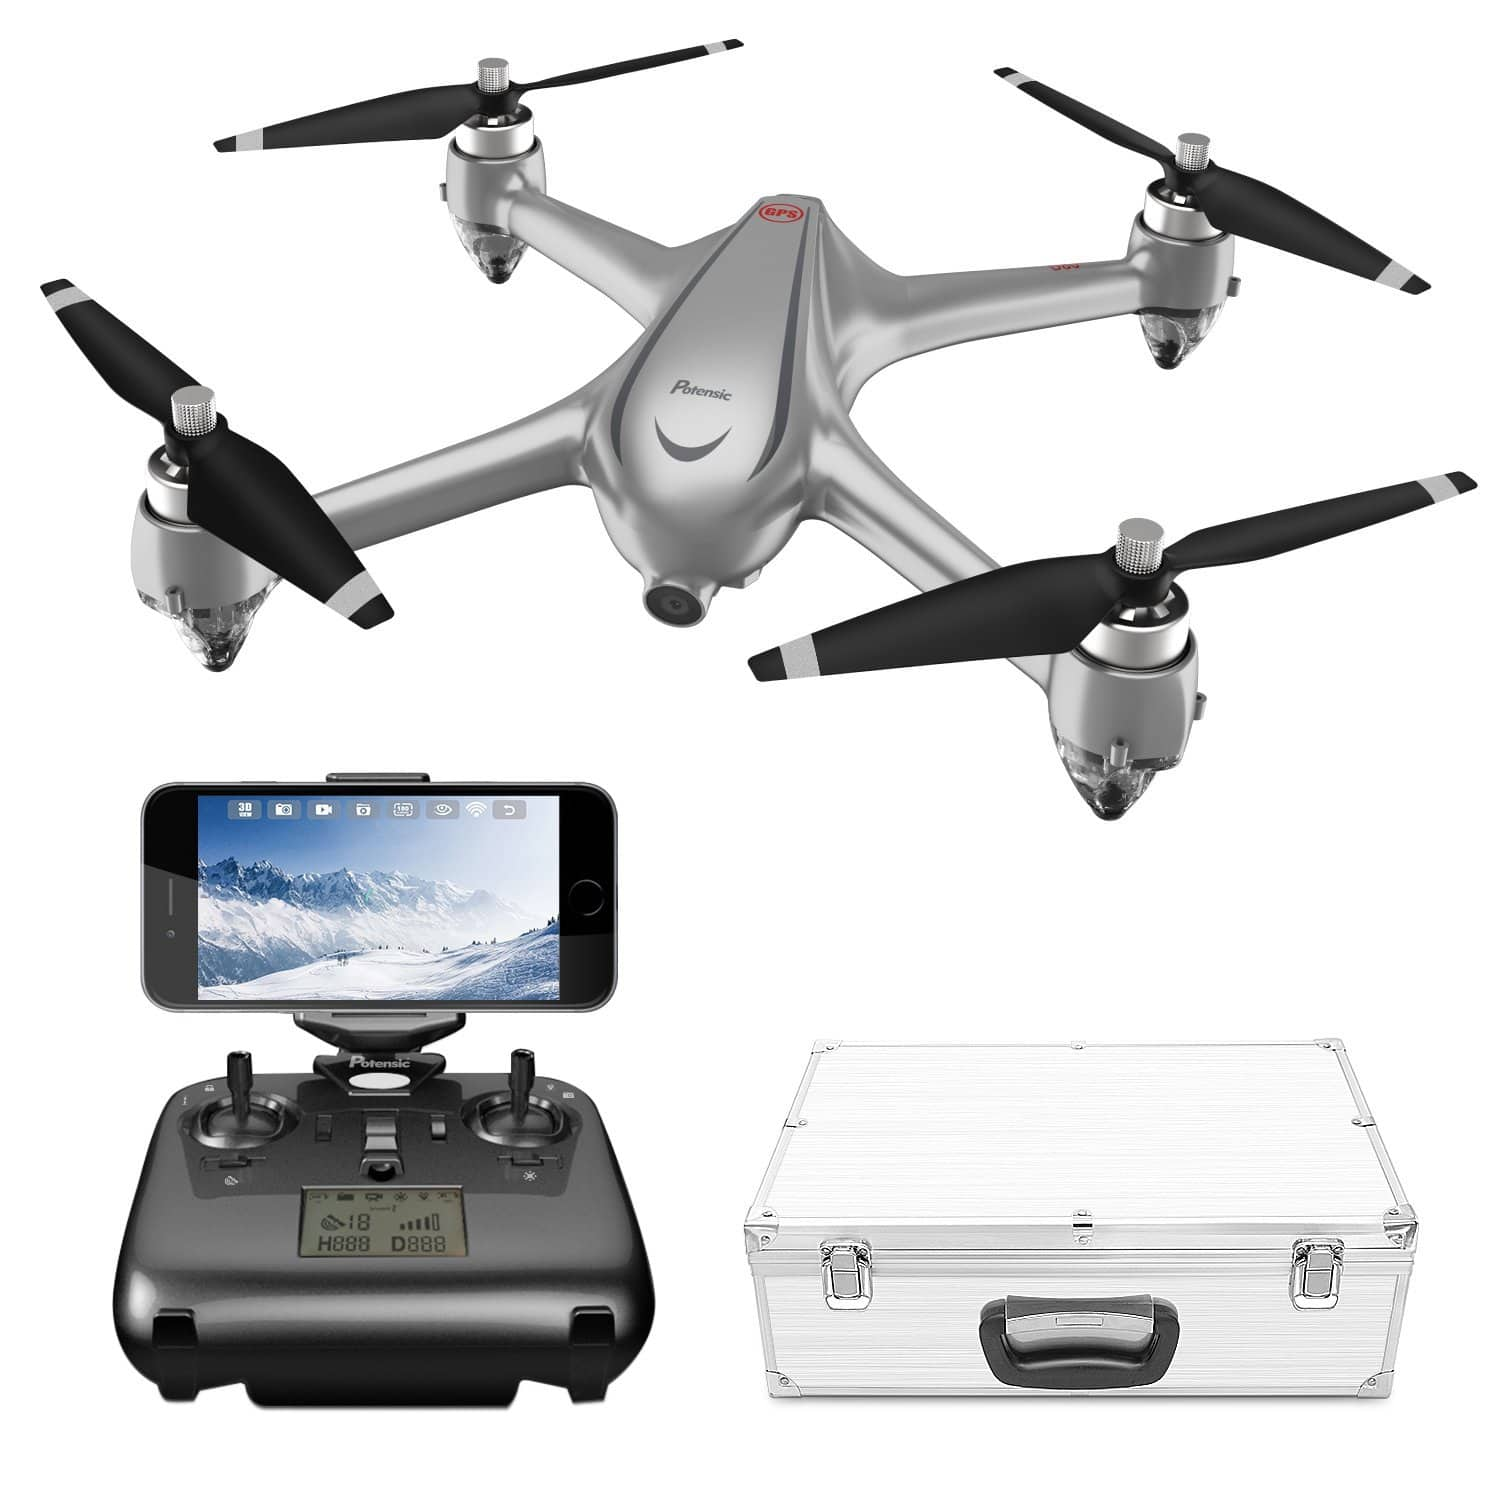 37% off GPS FPV RC Drone, D80 w/1080P Camera Live Video & GPS Return Home for $188.99 @ Amazon + Free shipping